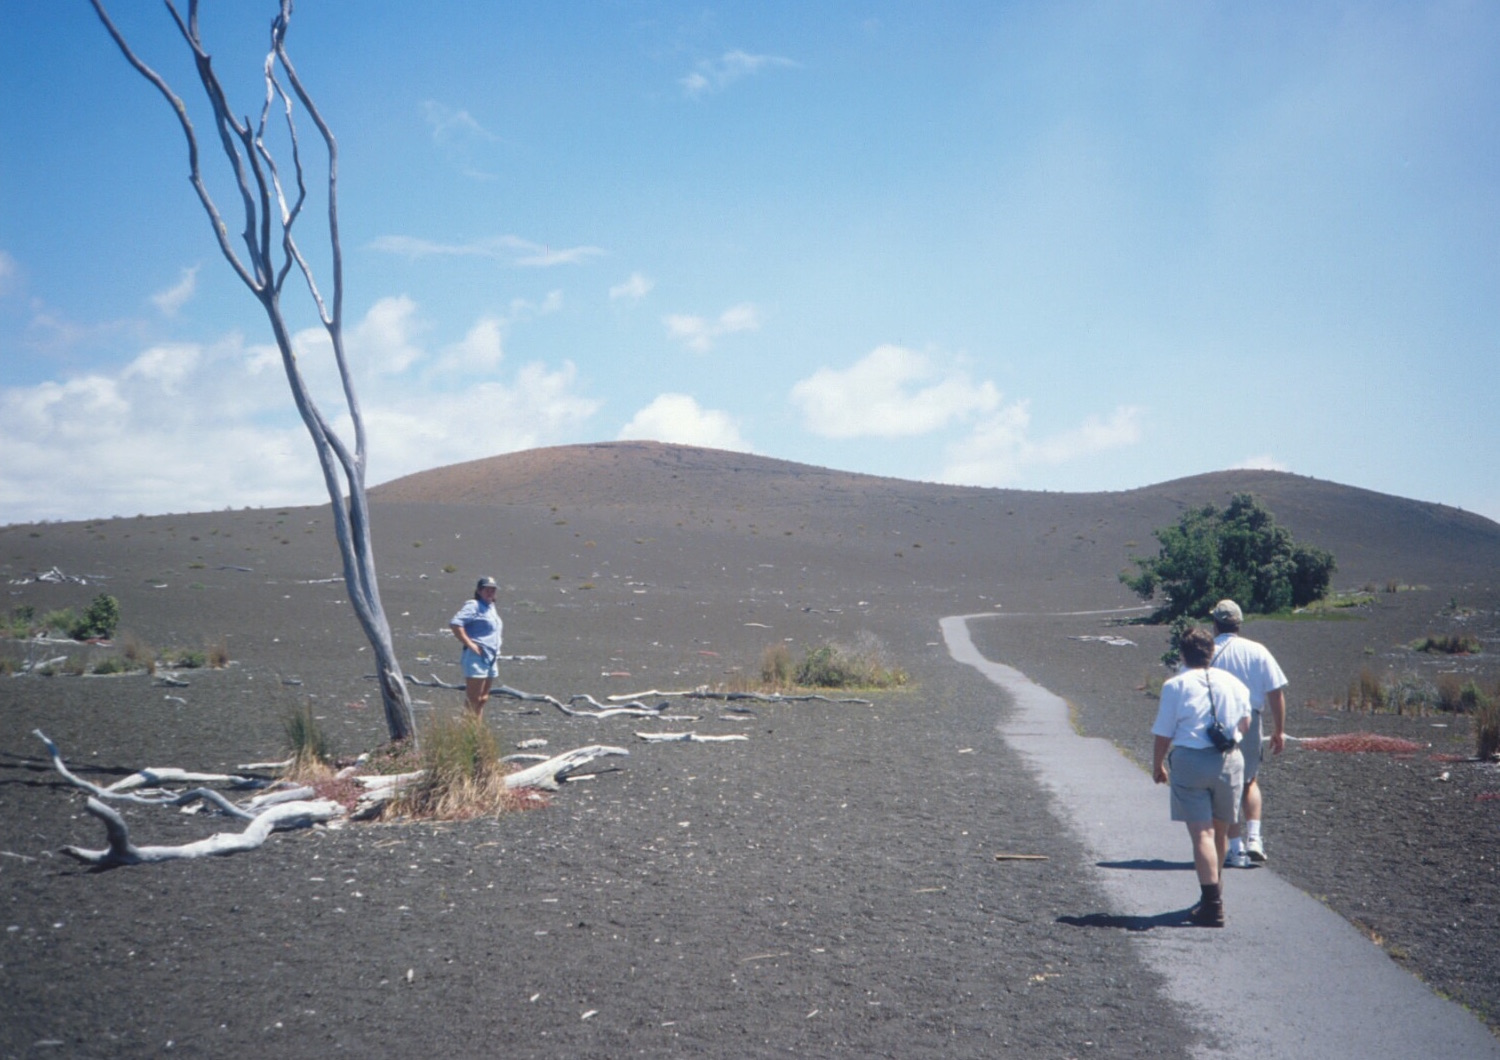 Discover Hawaii's Active Volcanoes – Hawaii Teacher Trip July 2018